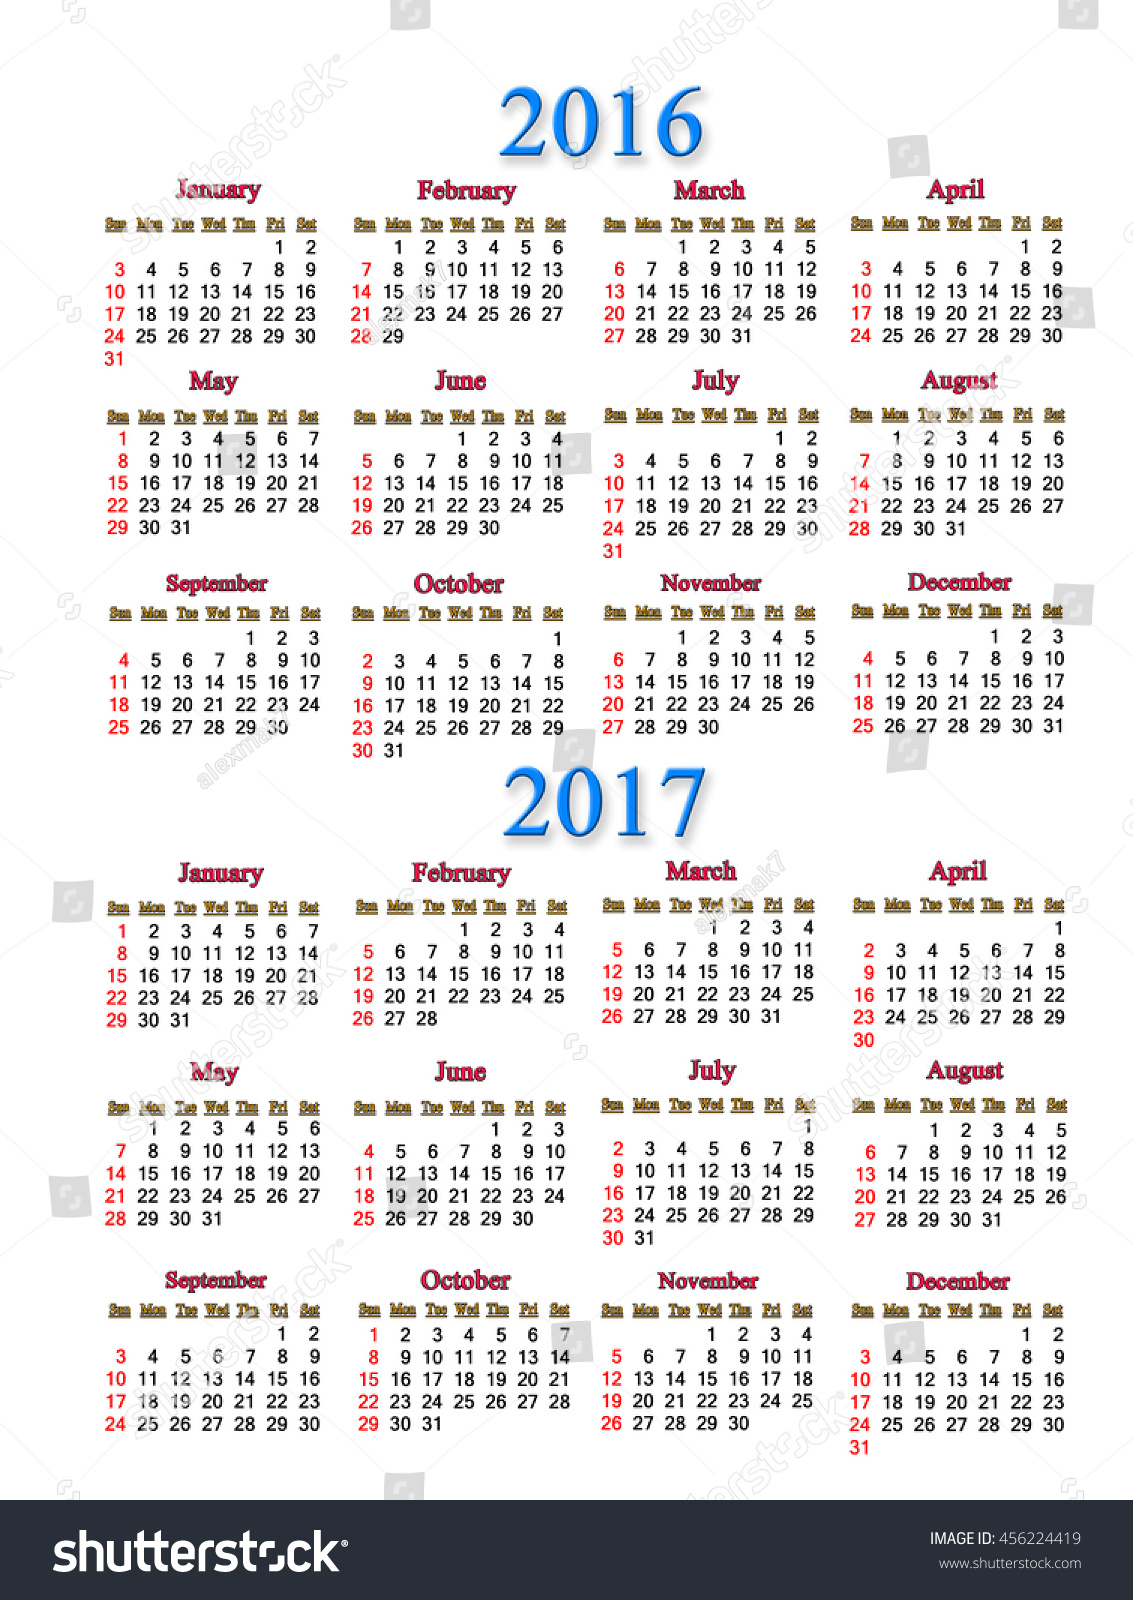 Office Calendar 2016 : Office calendar  years on stock illustration